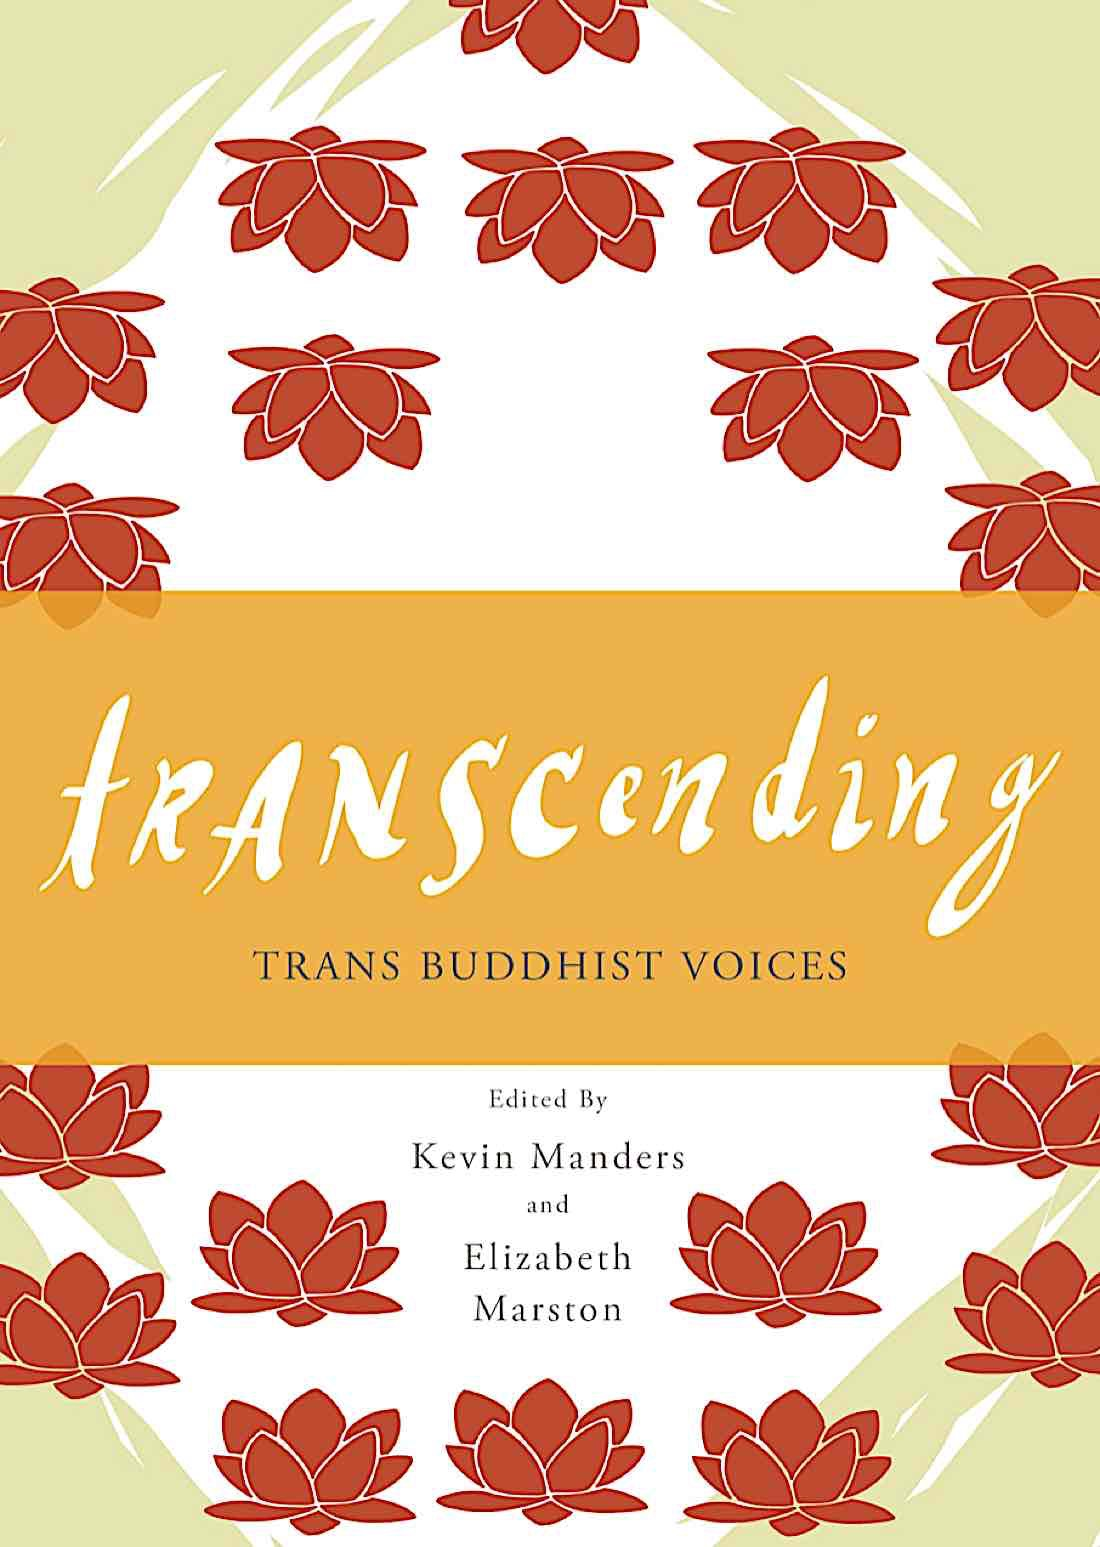 Buddha Weekly Transcending Trans Buddhist Voices book Buddhism